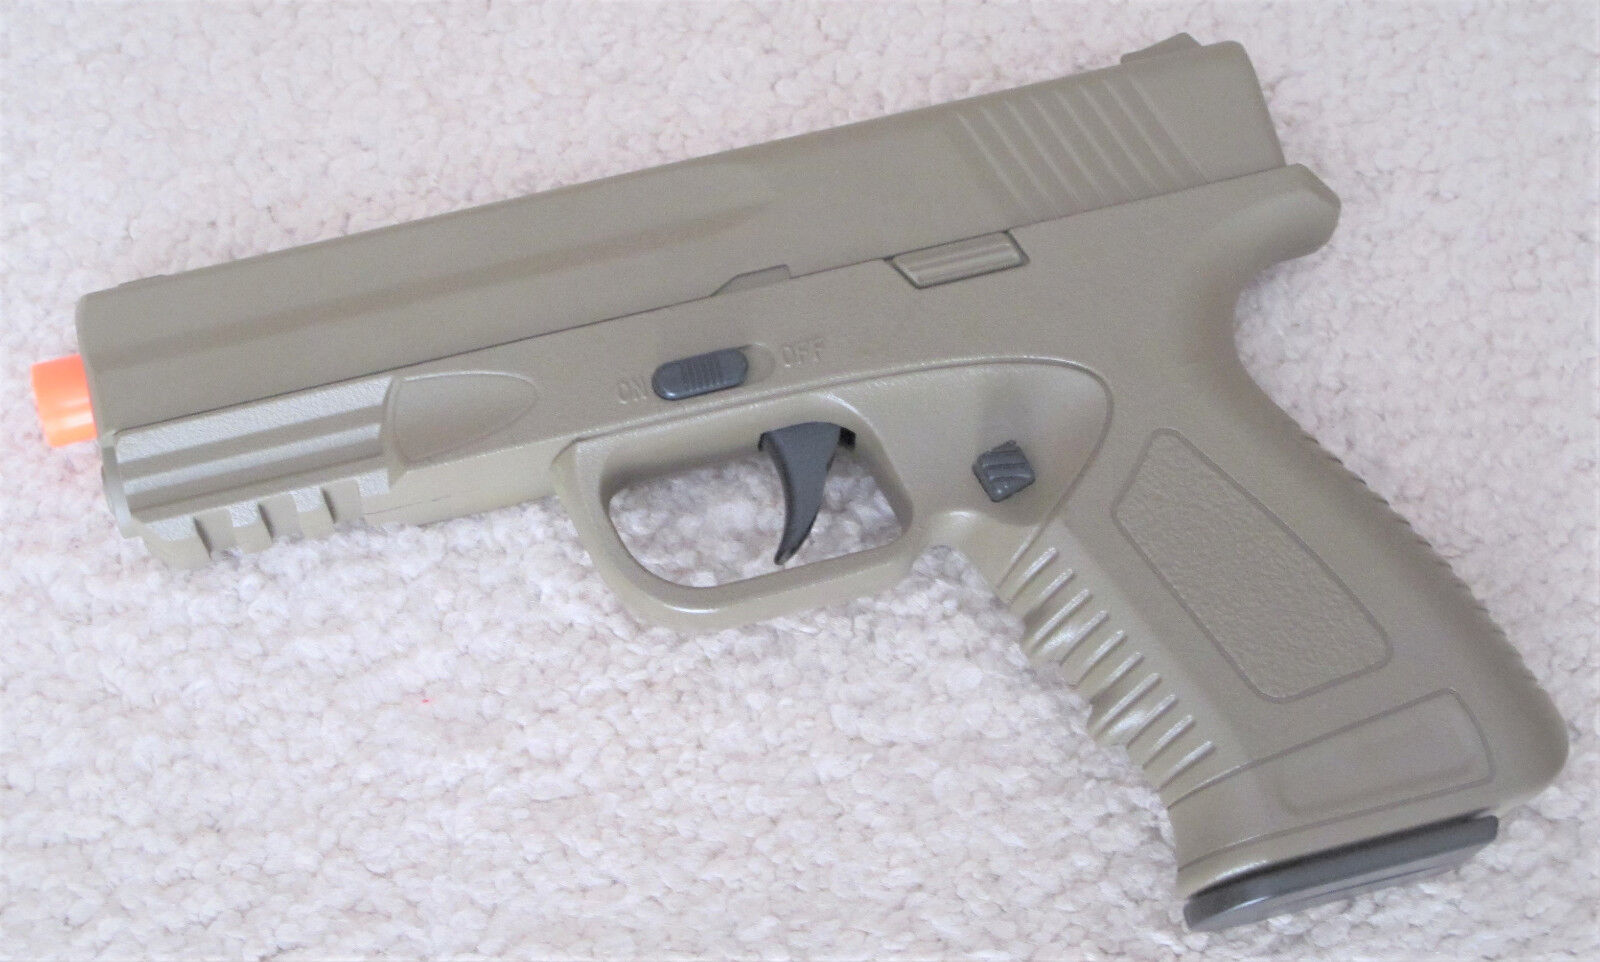 High Quality Metal Airsoft Spring Pistol Shoot up to 240 FPS